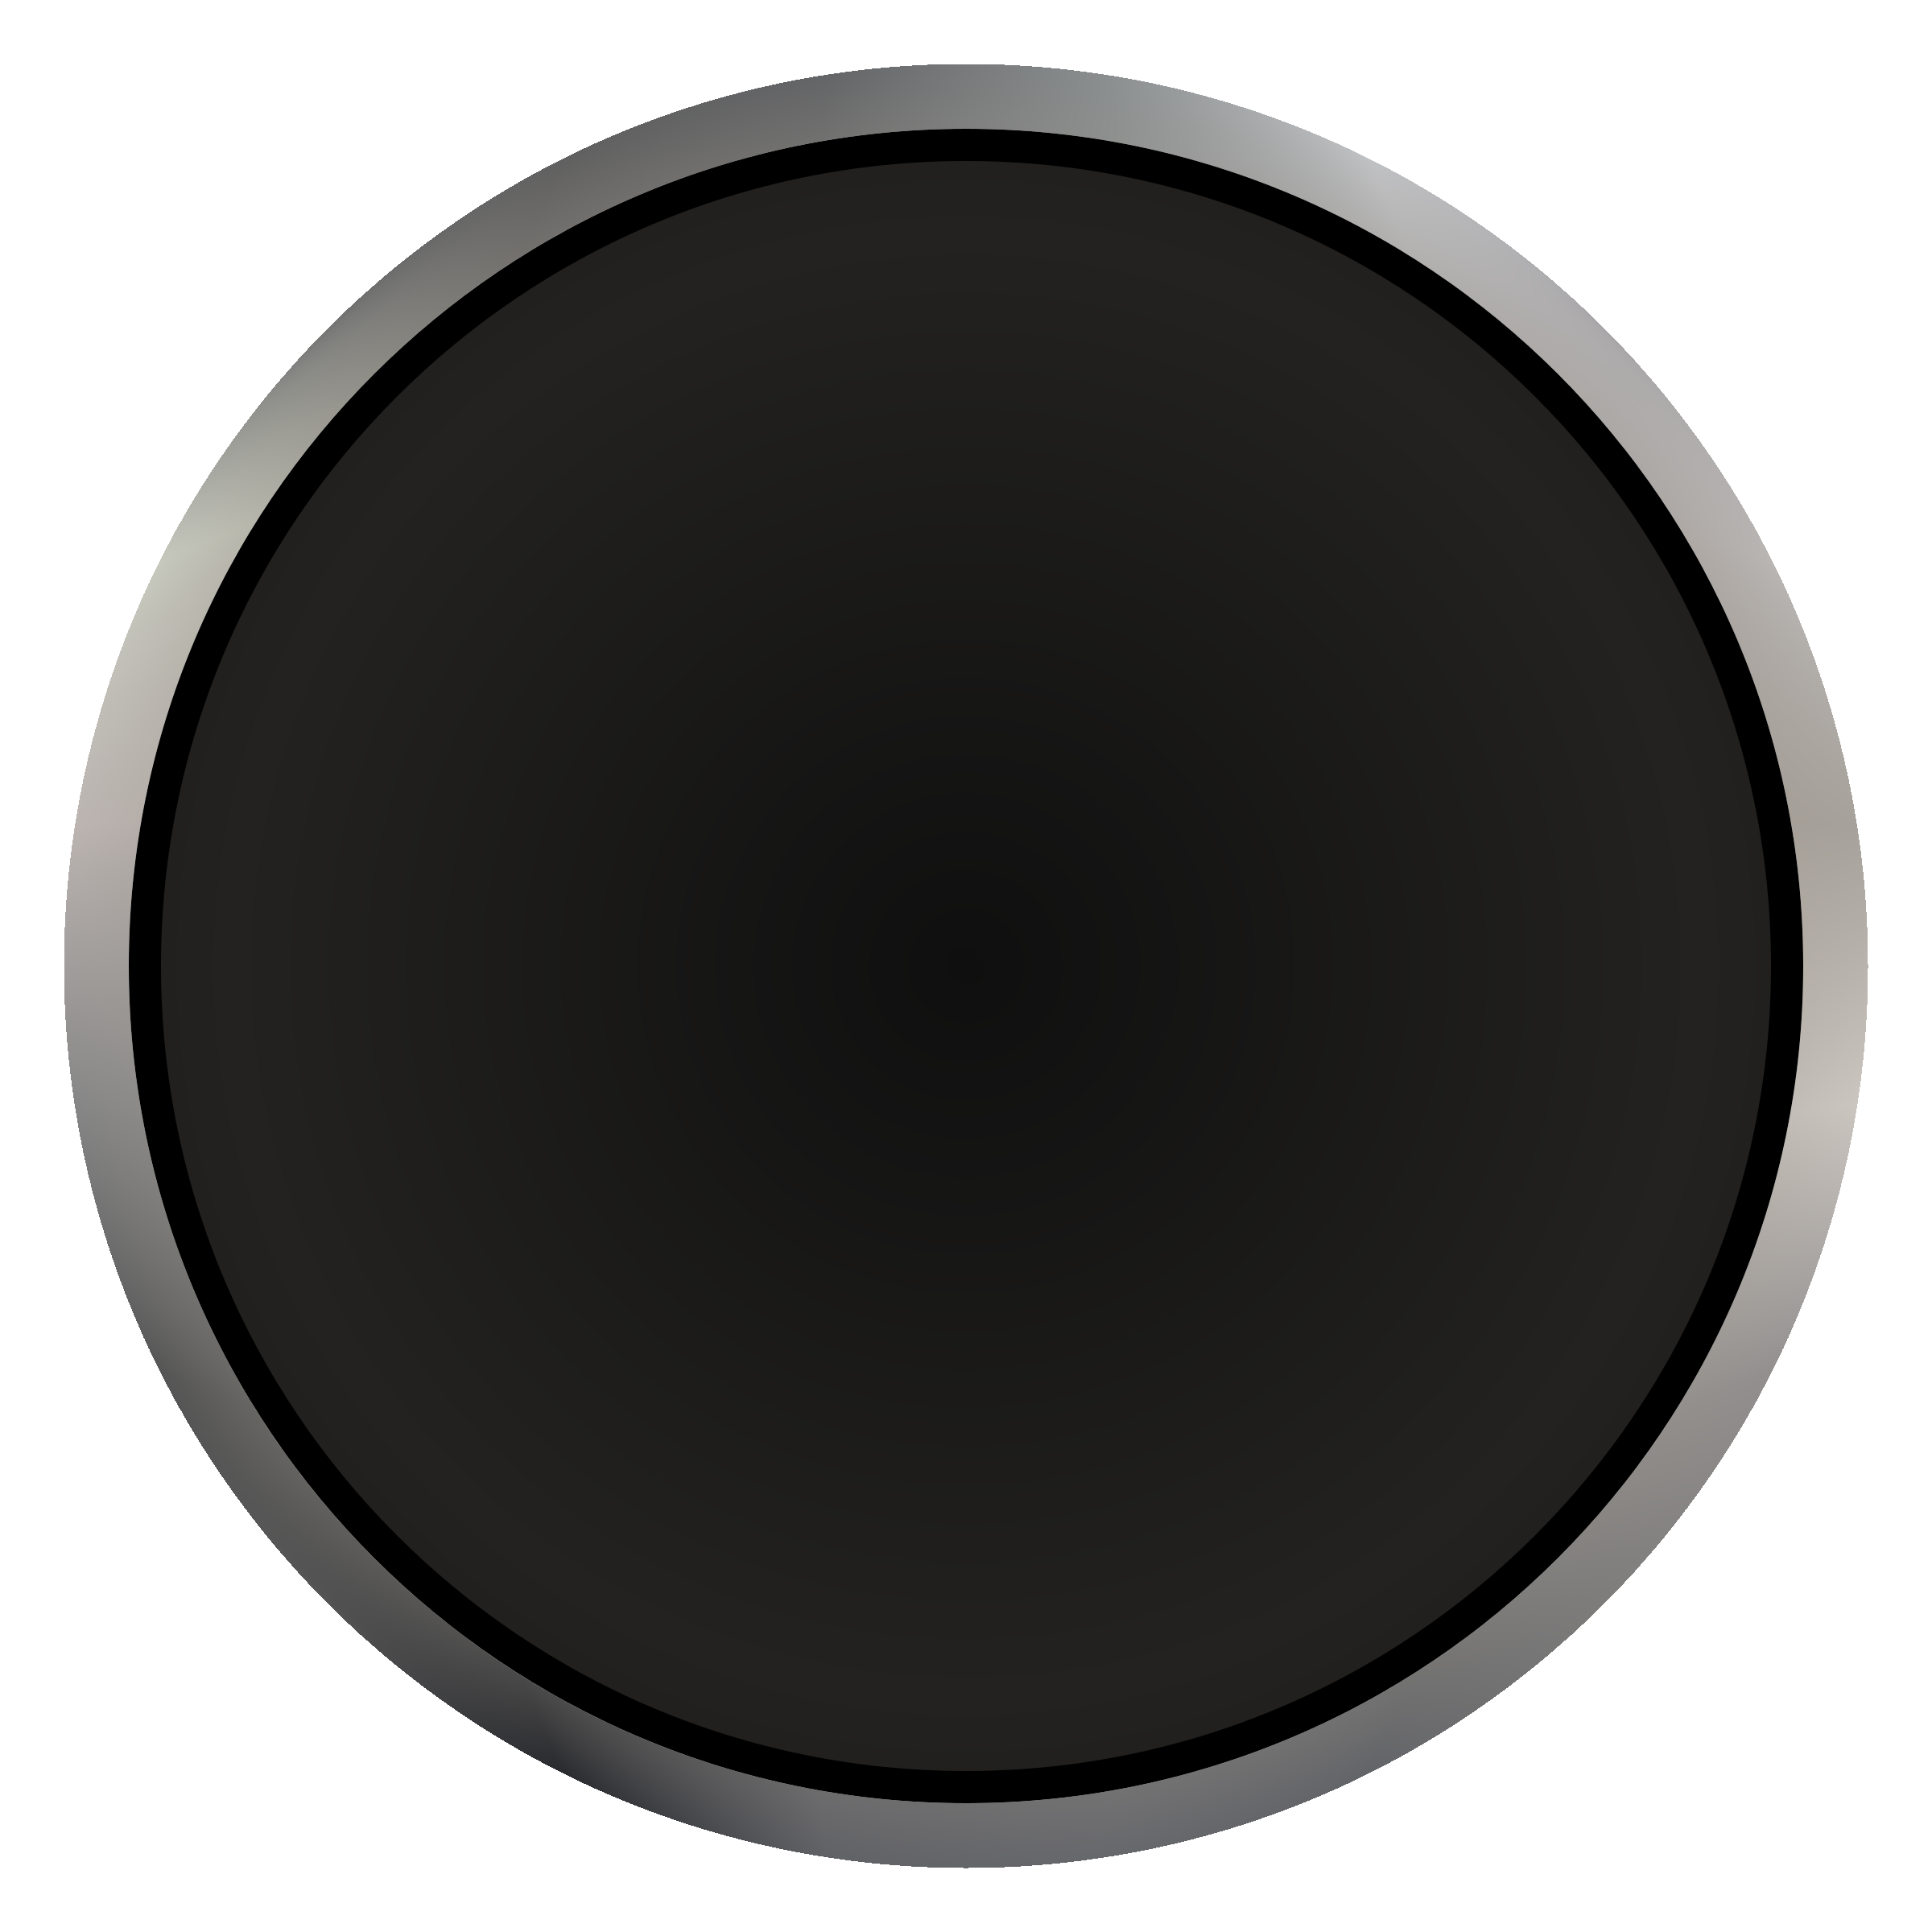 Black button png. Industrial push icons free